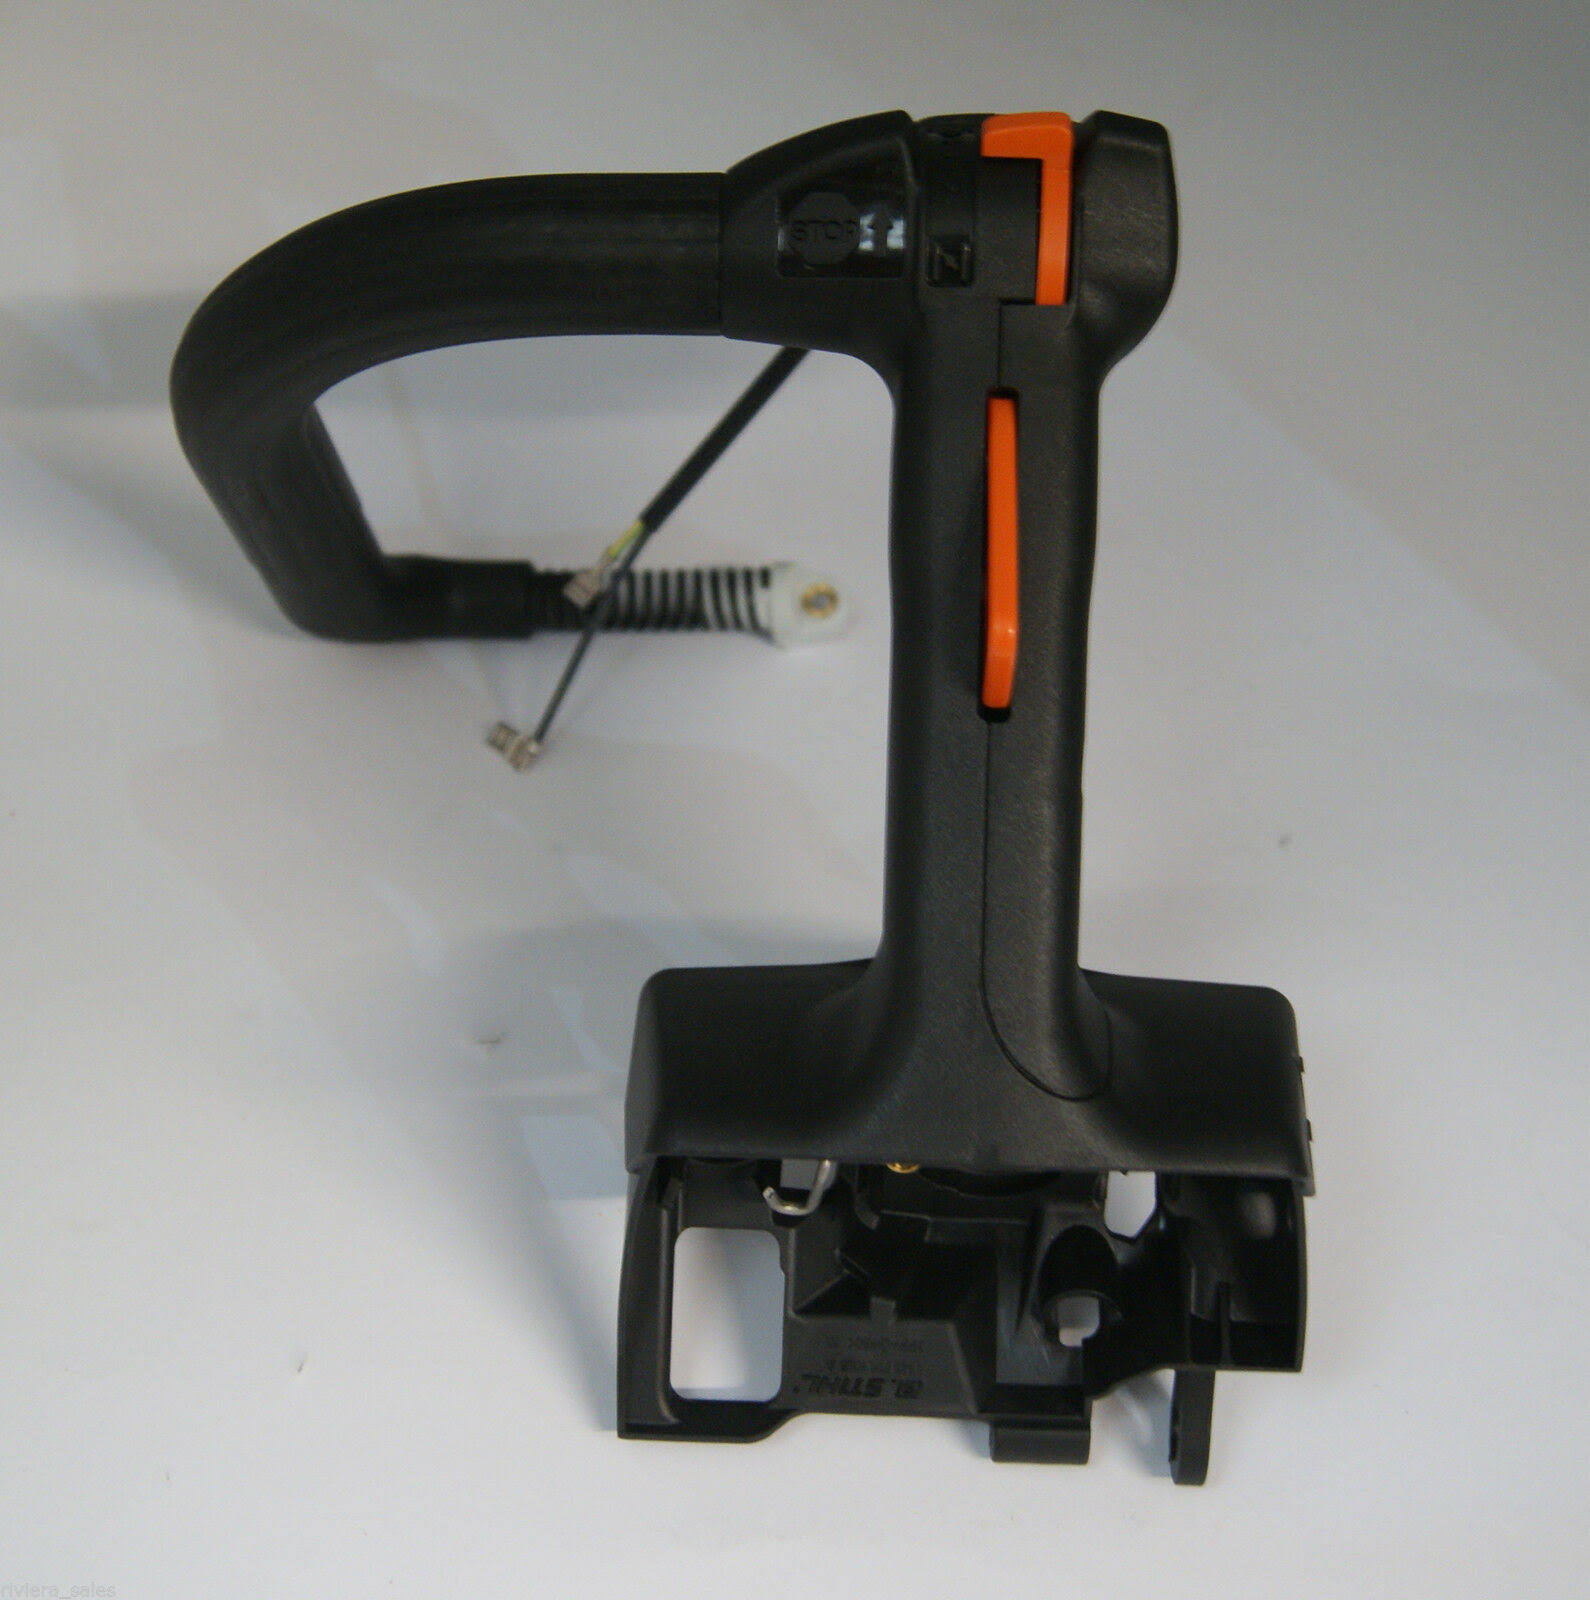 Genuine Stihl Handle Housing for MS201T Chainsaw 1145-790-1016 114579